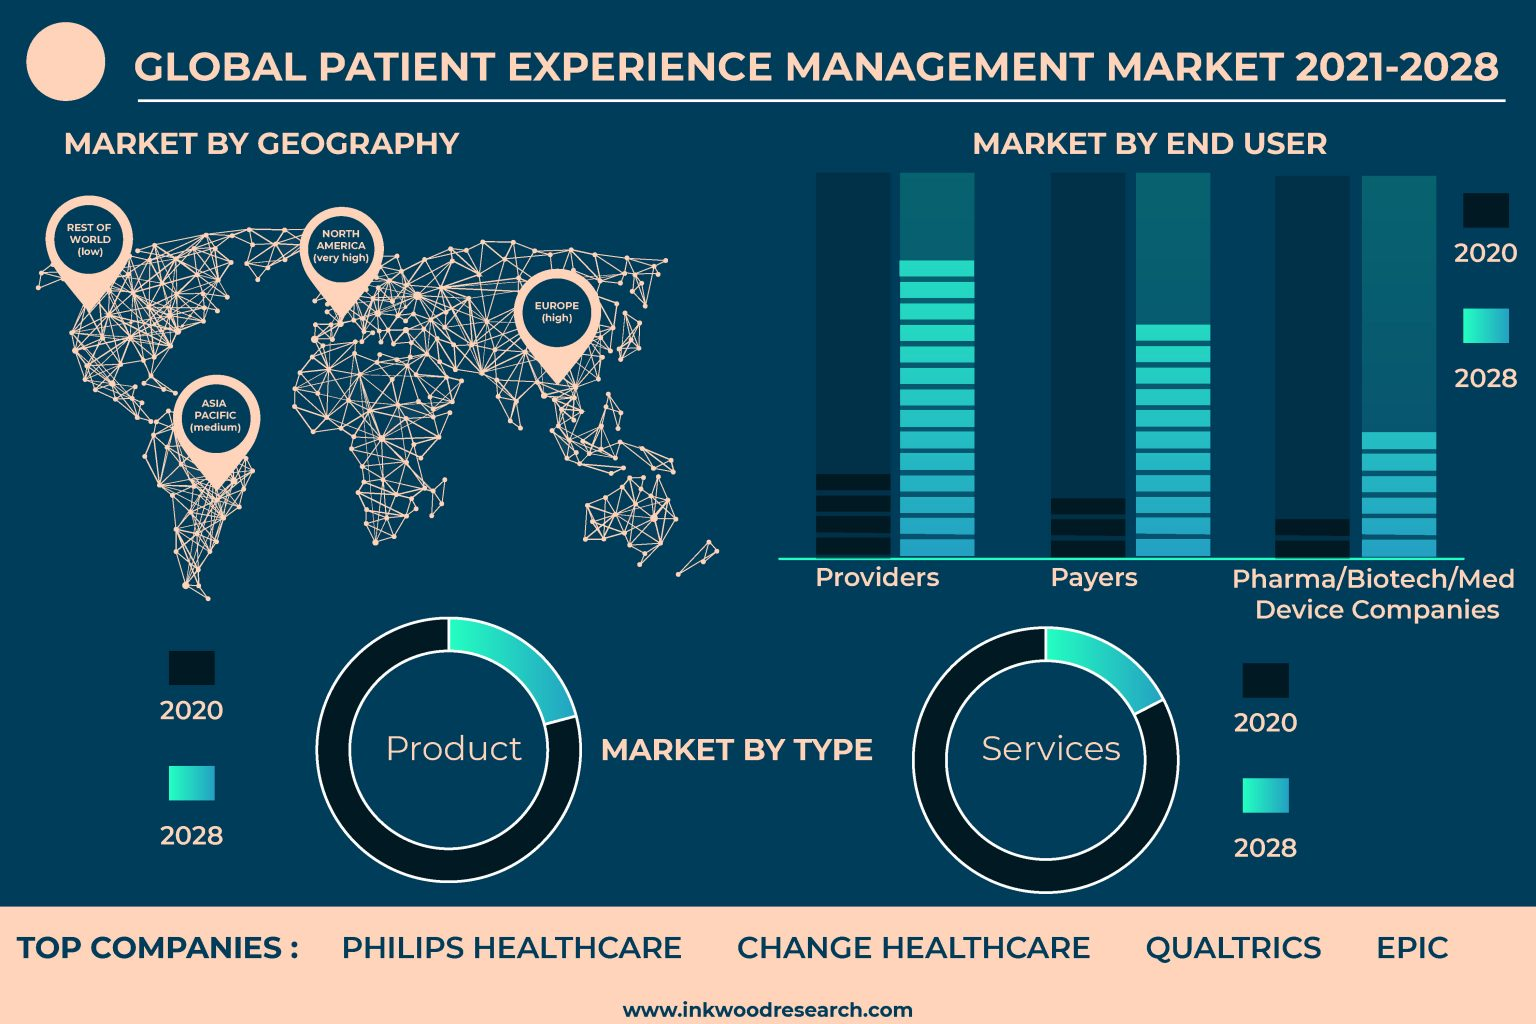 Mobile Healthcare Applications drive the Global Patient Experience Management Market